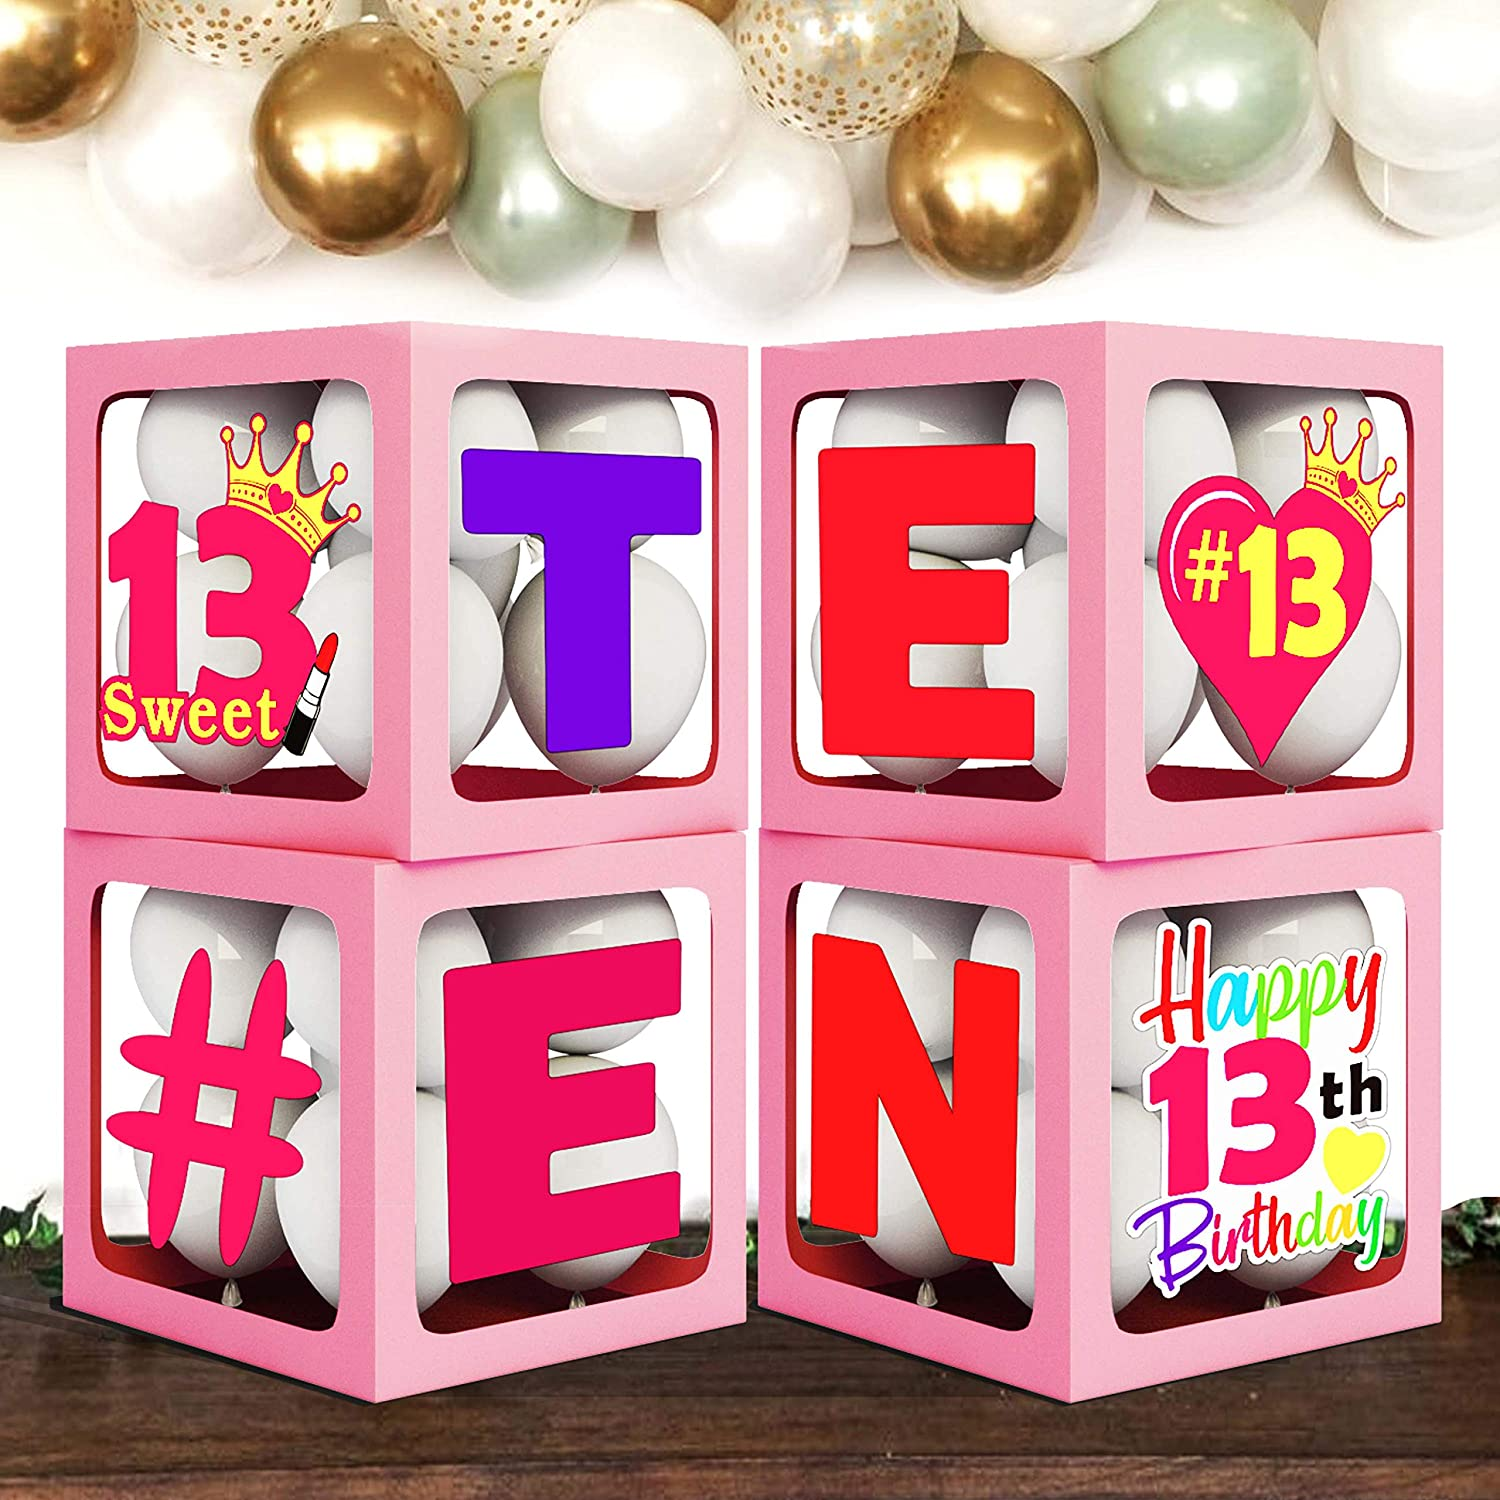 Pink Official Teenager Balloons Boxes Party Decorations Set of 4 Pcs Boxes 13th Birthday Theme Thirteen Years Old Party Supplies